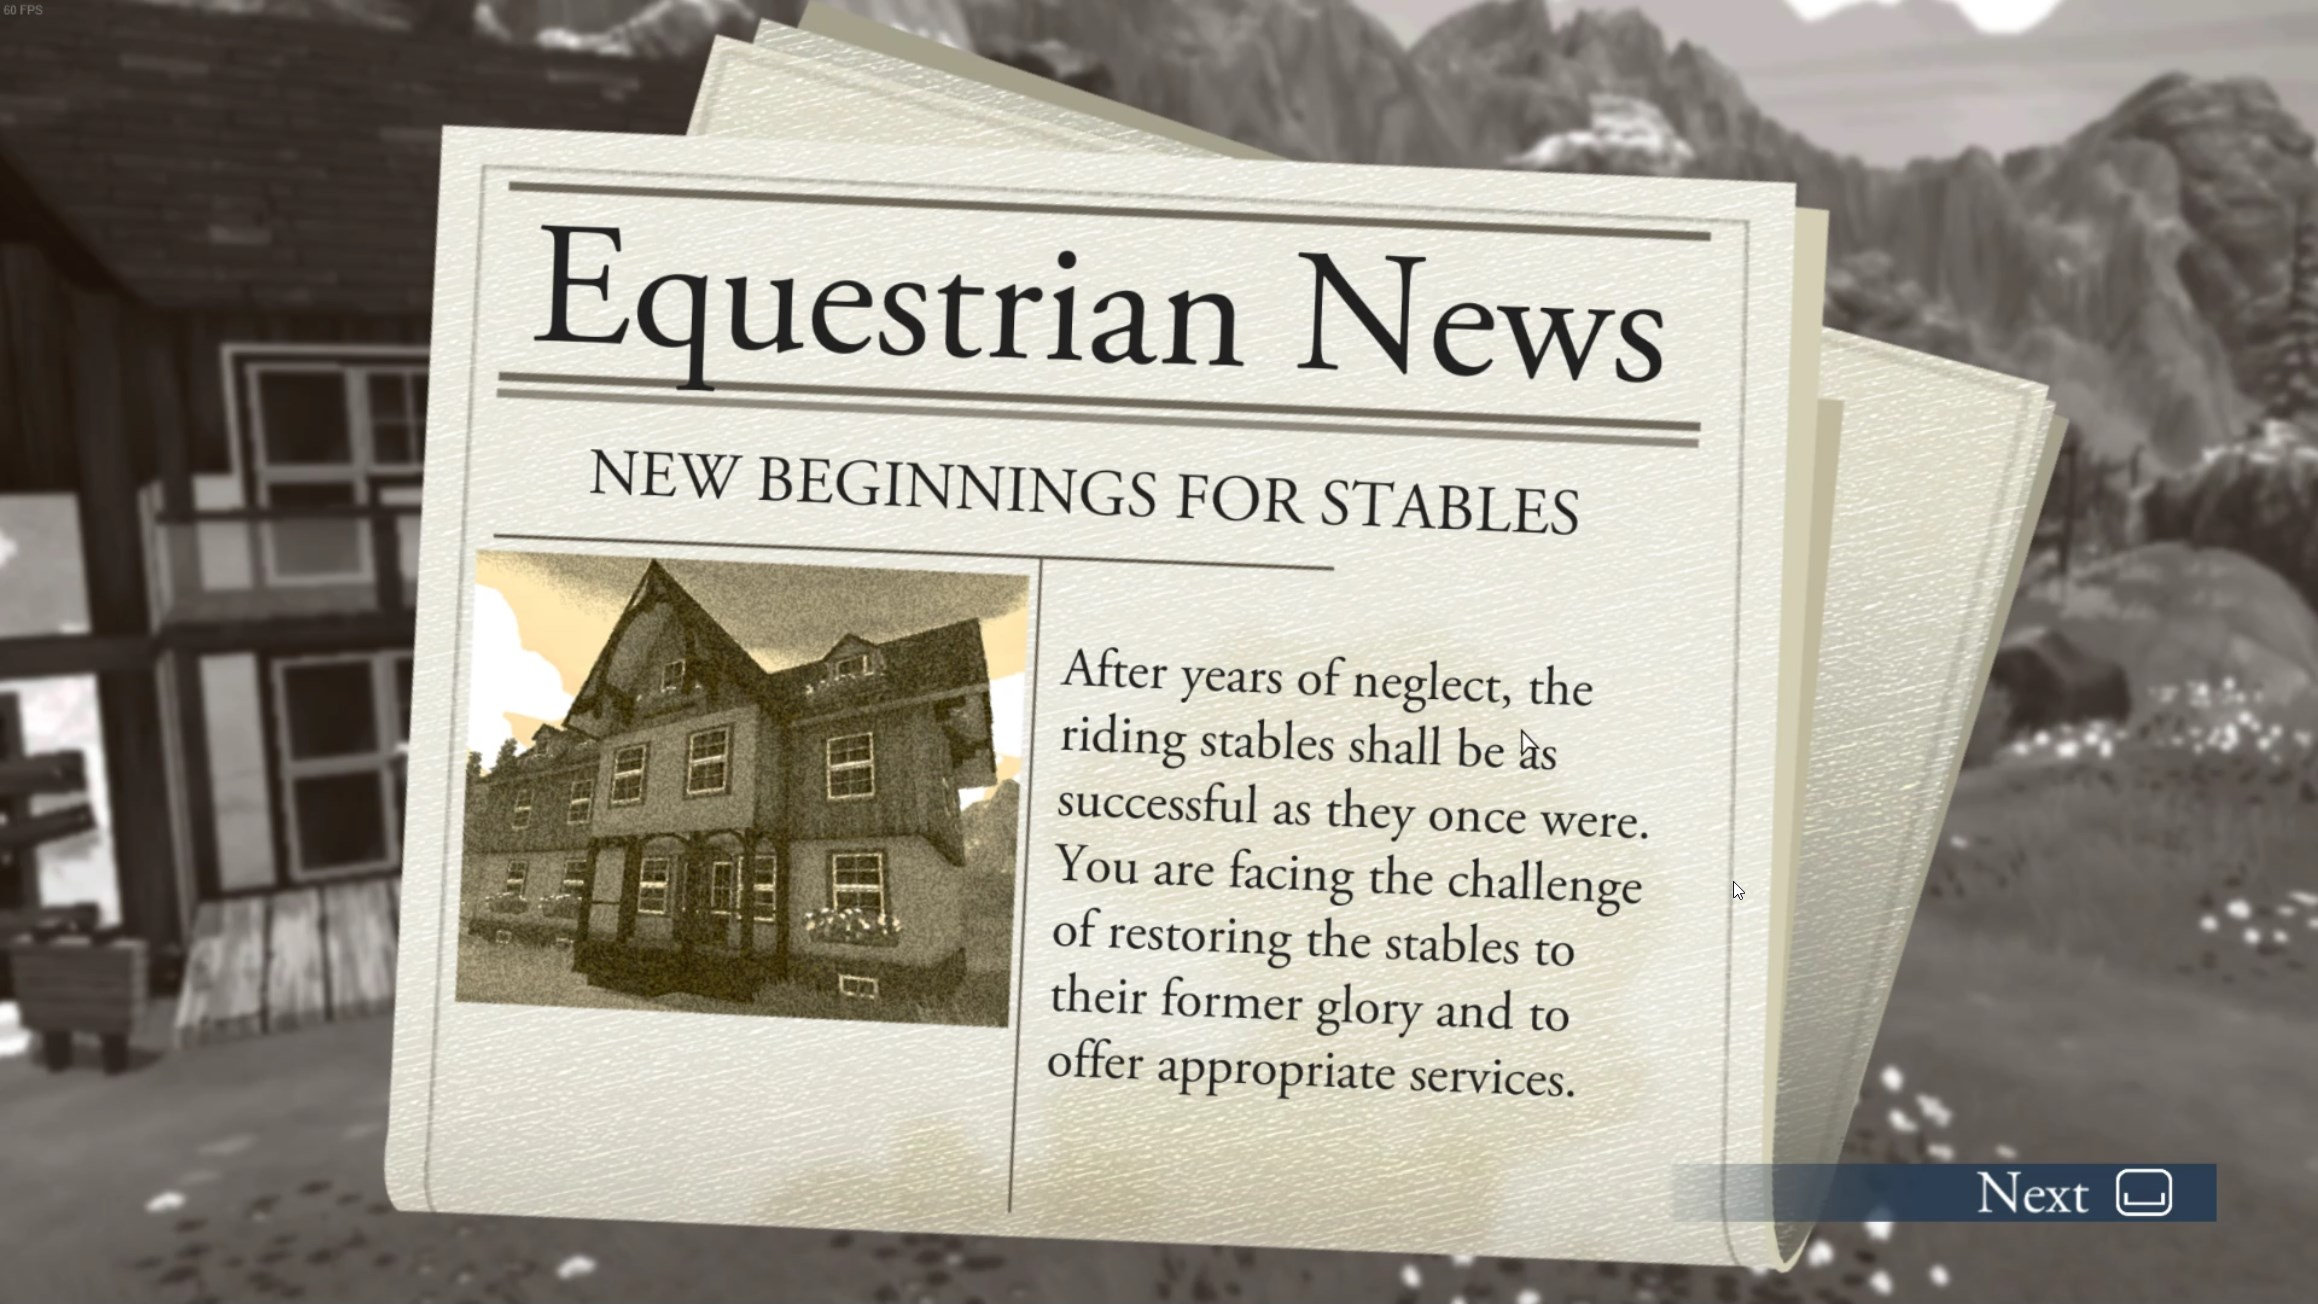 Where  Life With Horses  had these little newspaper articles for a stylized way of informing you about your own success at several points in the game,  Your Horse Breeding  mostly relegates these messages to the regular UI after this initial screen. It does it without changing the actual text however, making the announcements stand out oddly in tone and wording.